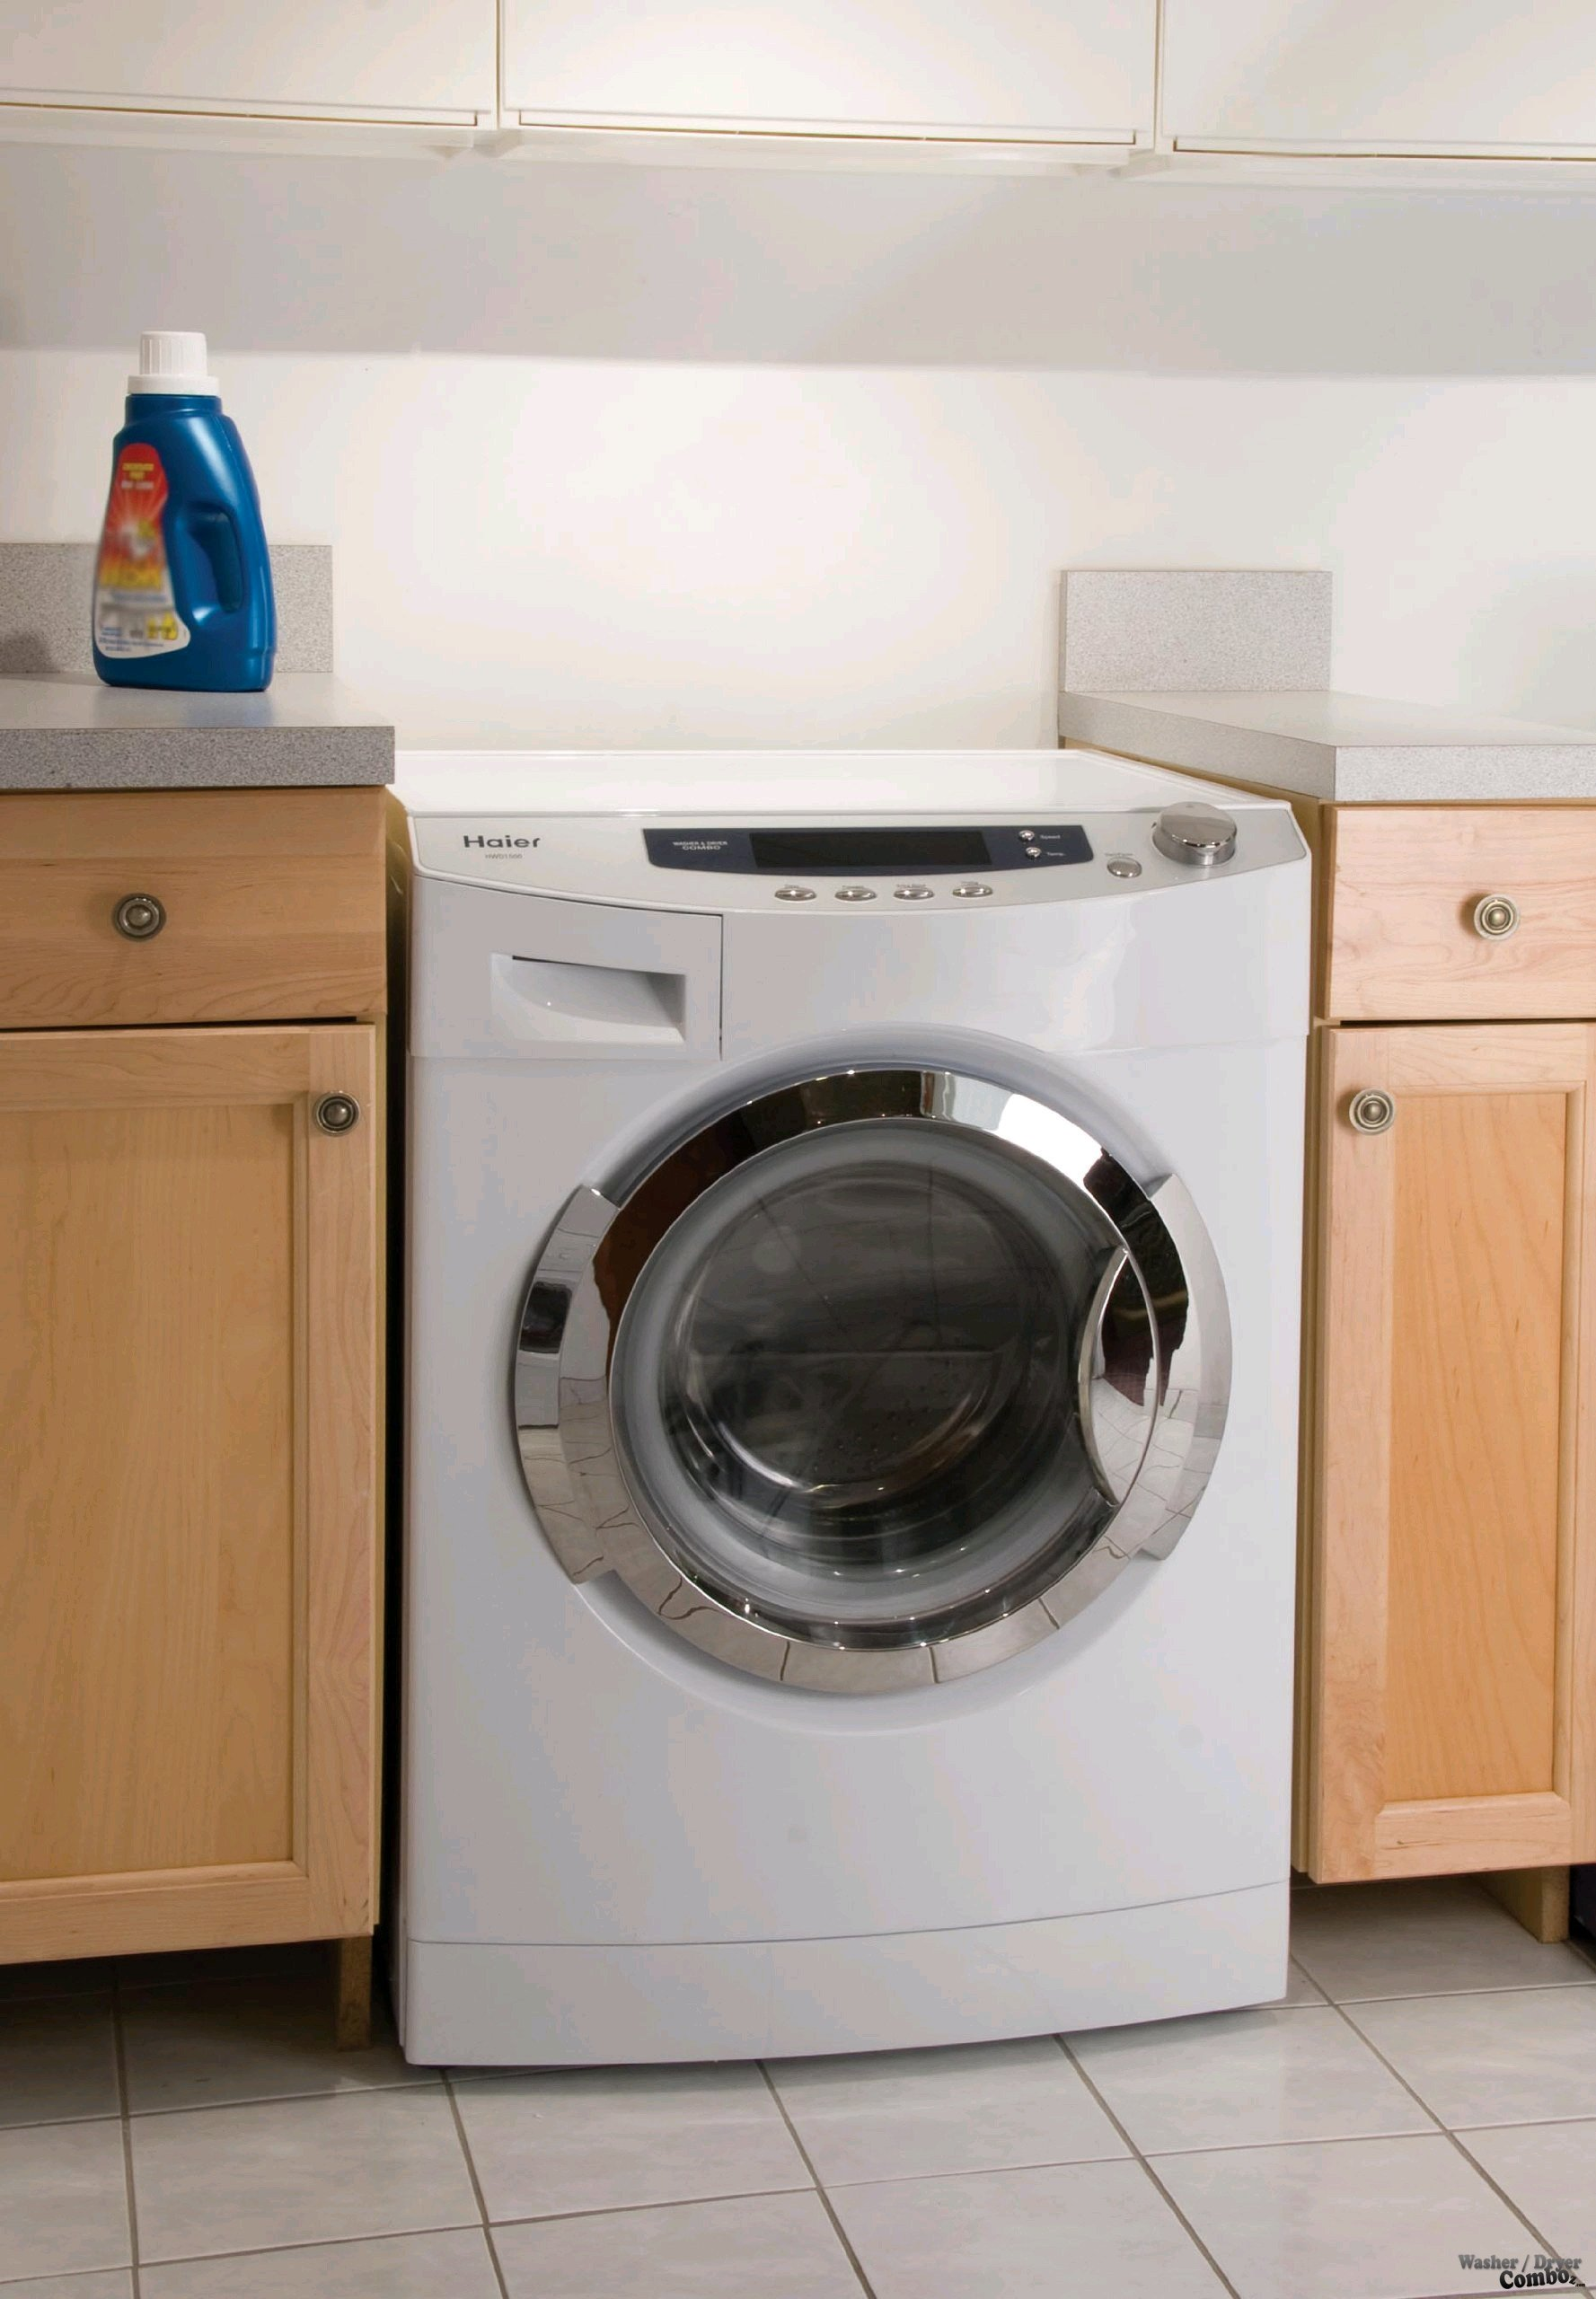 Lg all in one washer and dryer reviews - Haier Hwd1600 Fit